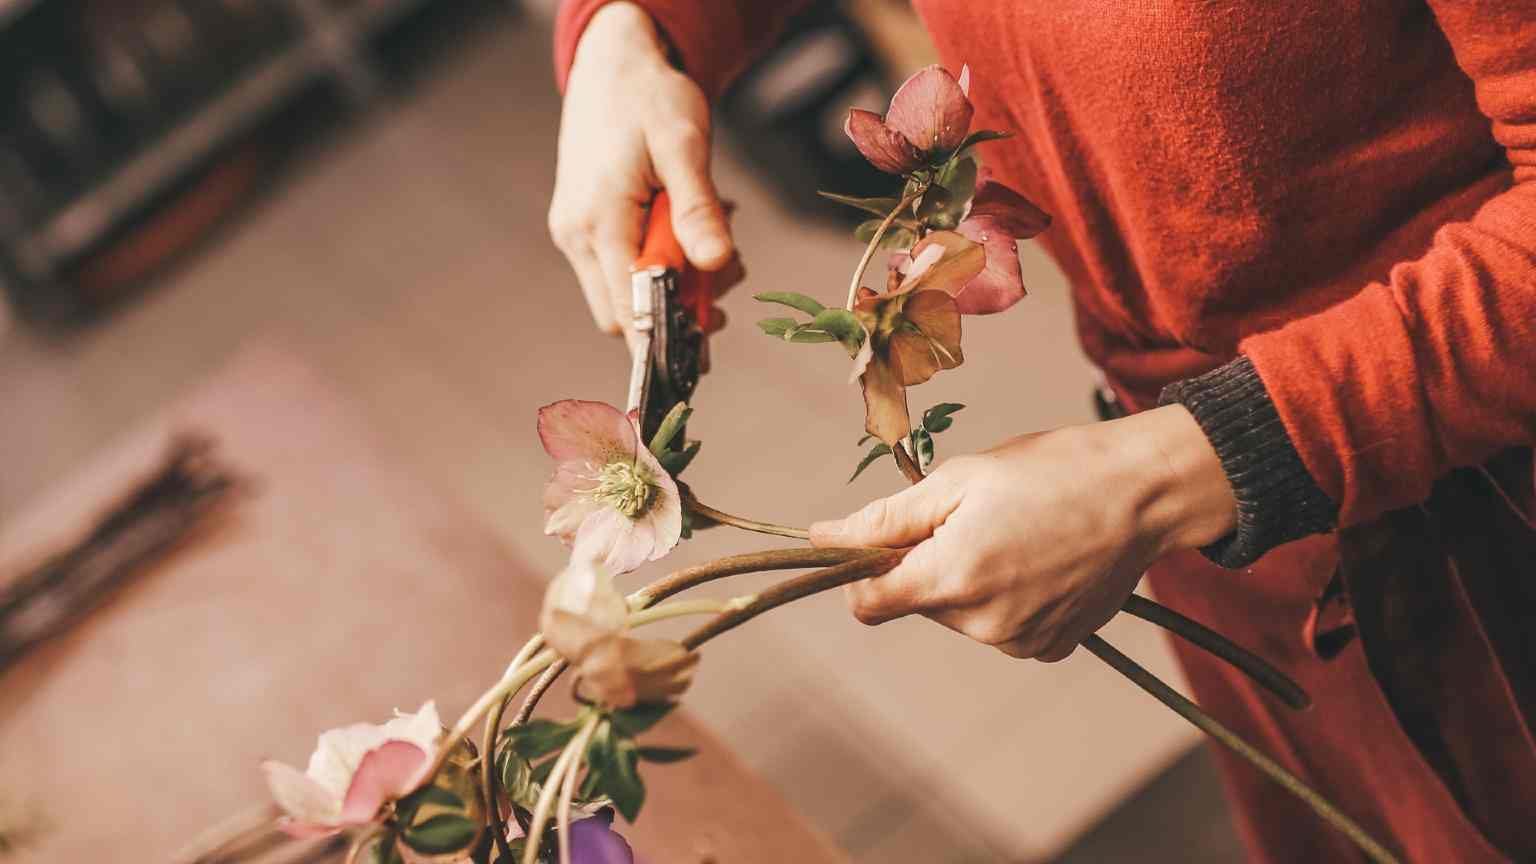 florist cutting flowers with shears